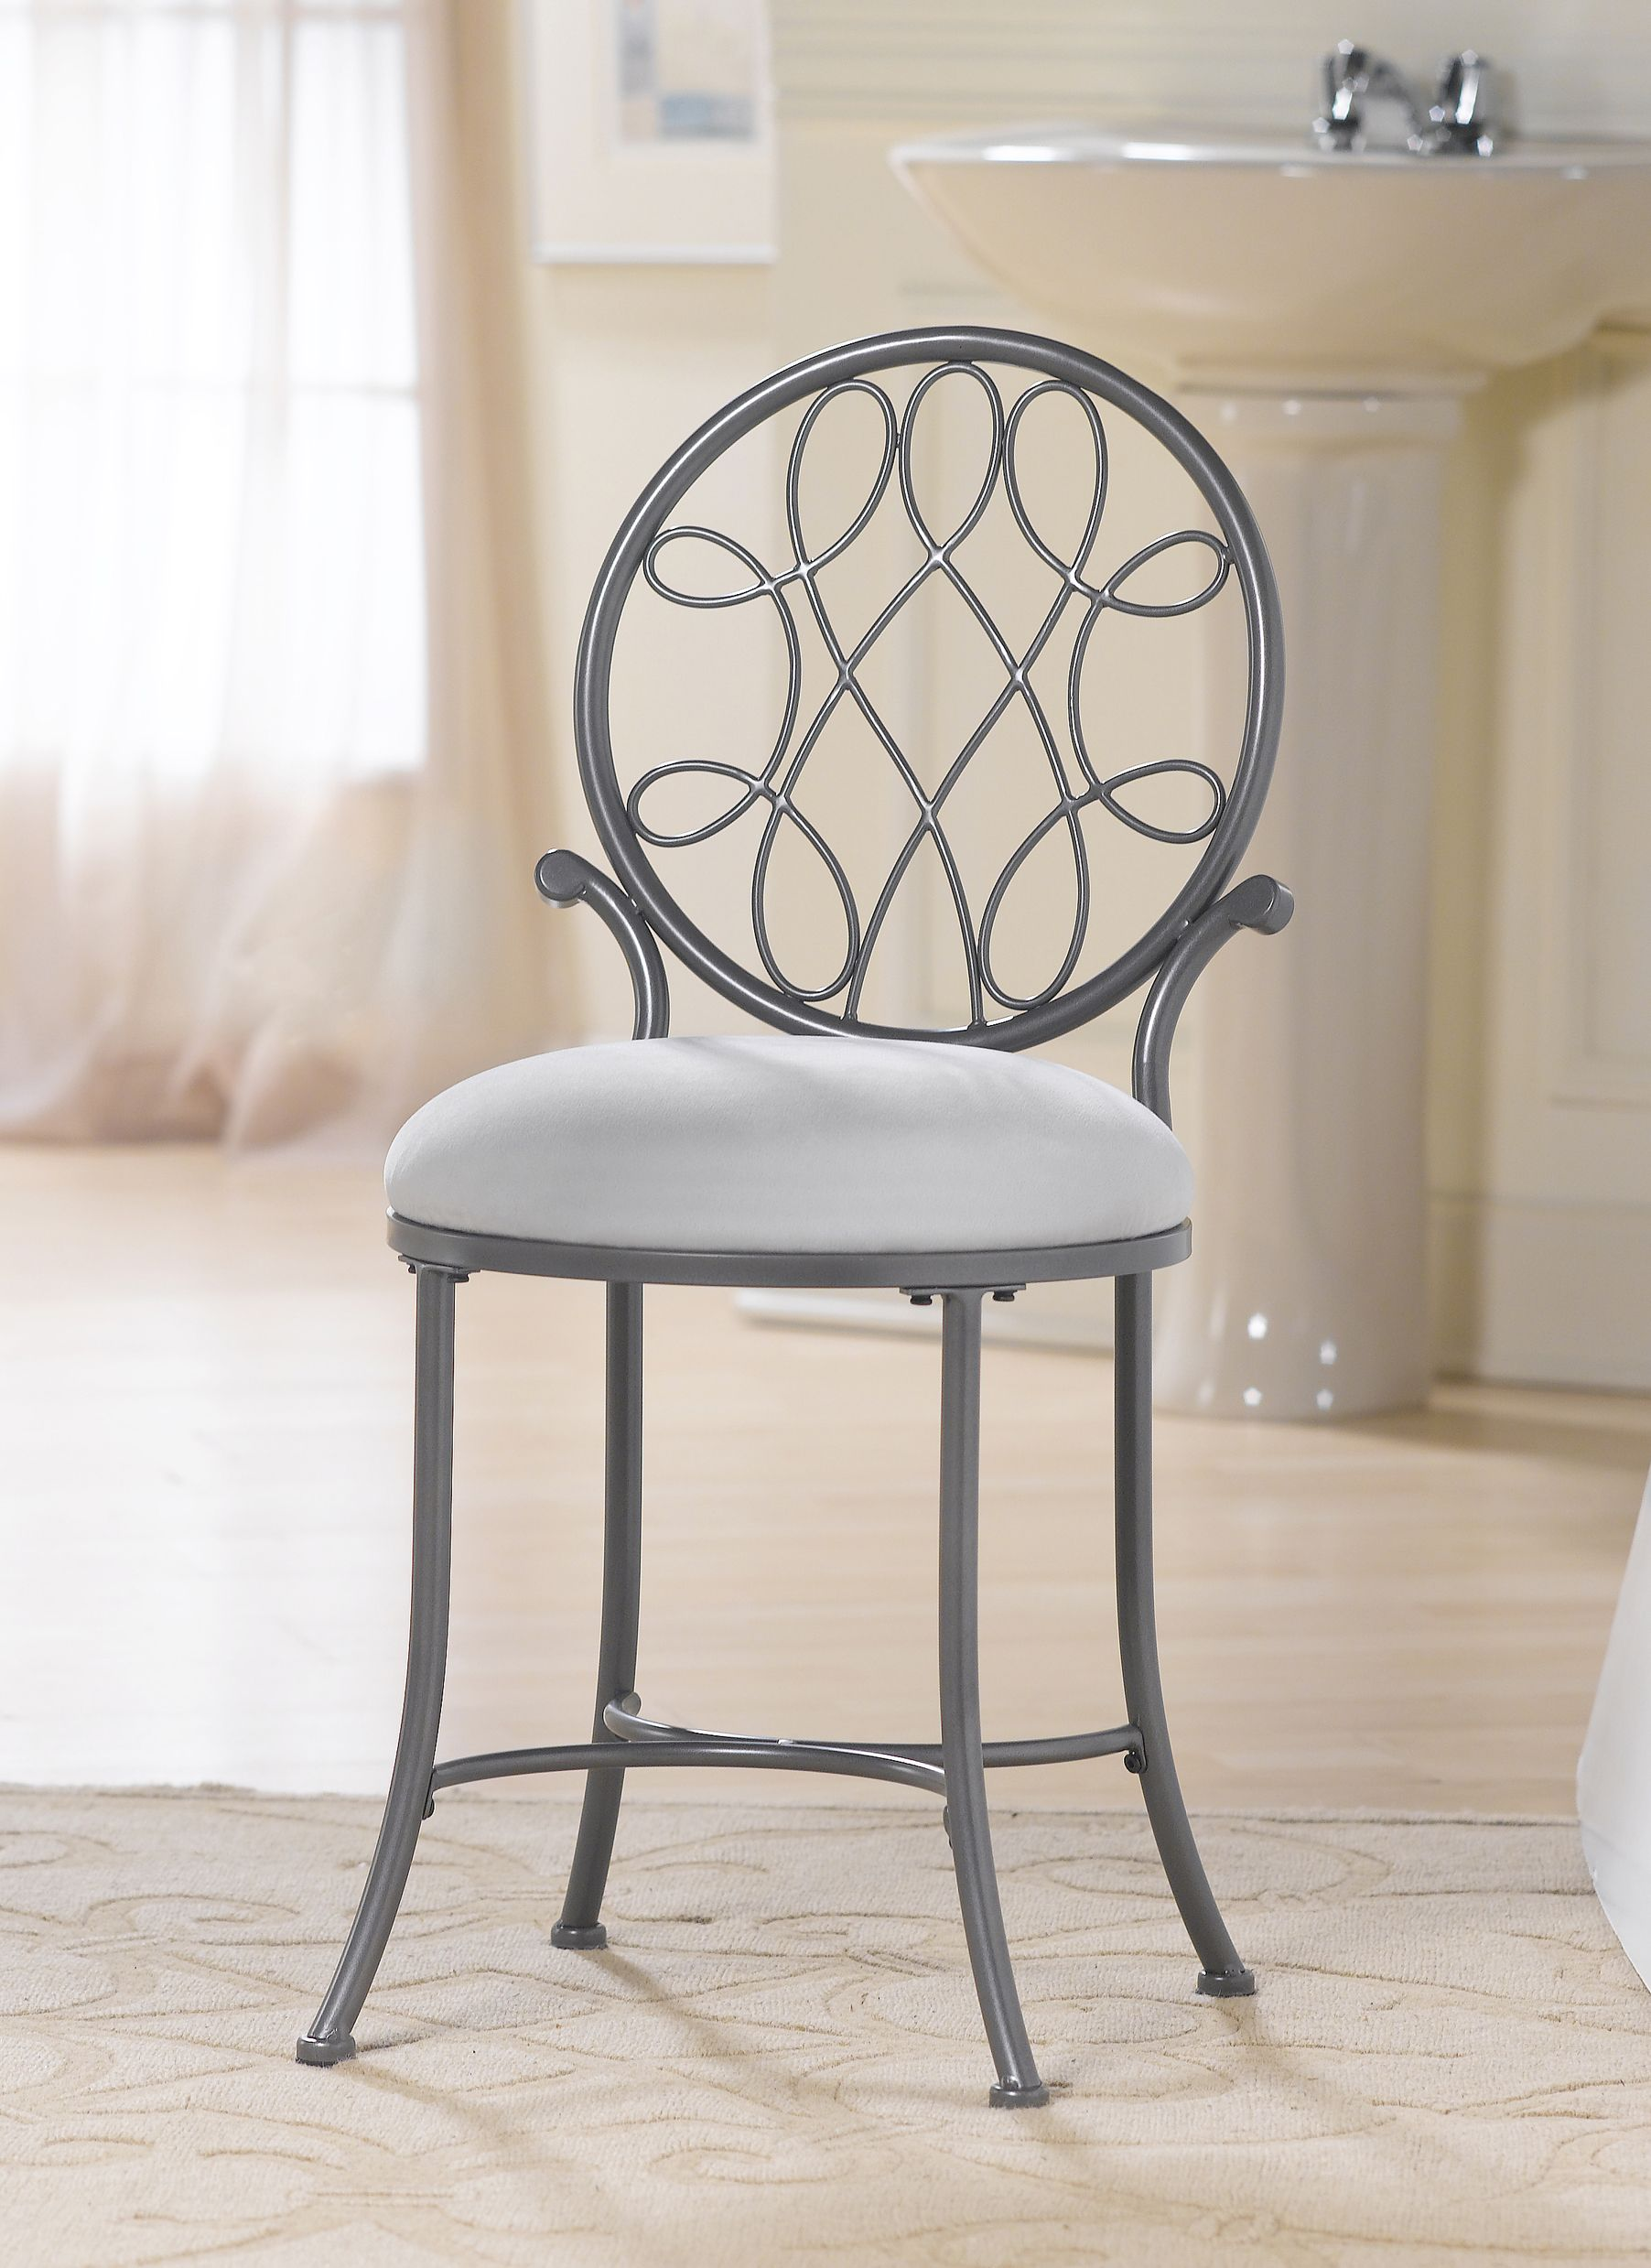 vanity stool for bathroom with vintage wrought iron makeup vanity stools design with gray accent for contemporary vanity chairs for bathroom - Bathroom Vanity Stool